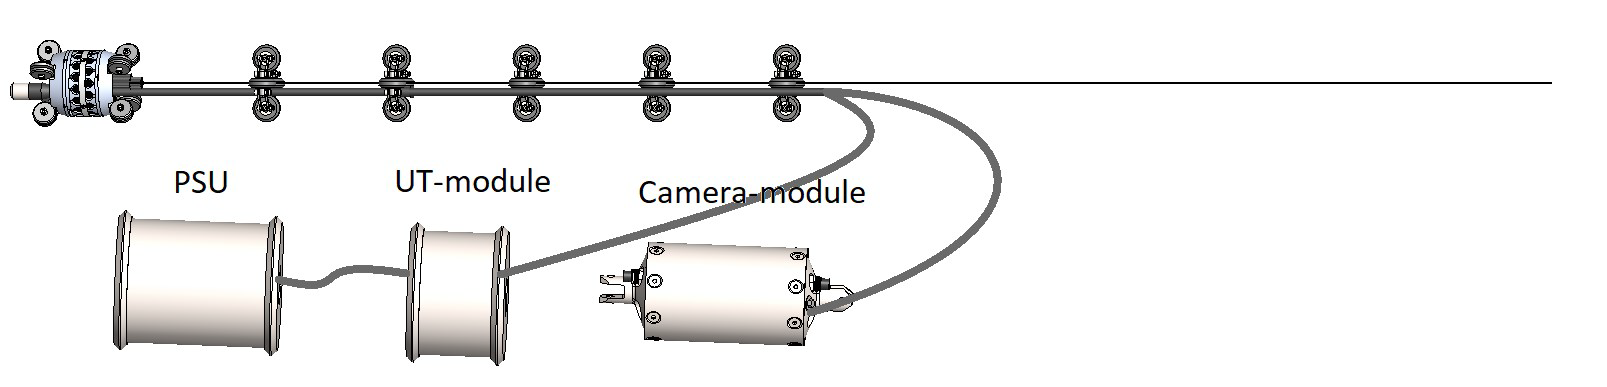 Figure 4 - Main parts of the inspection system